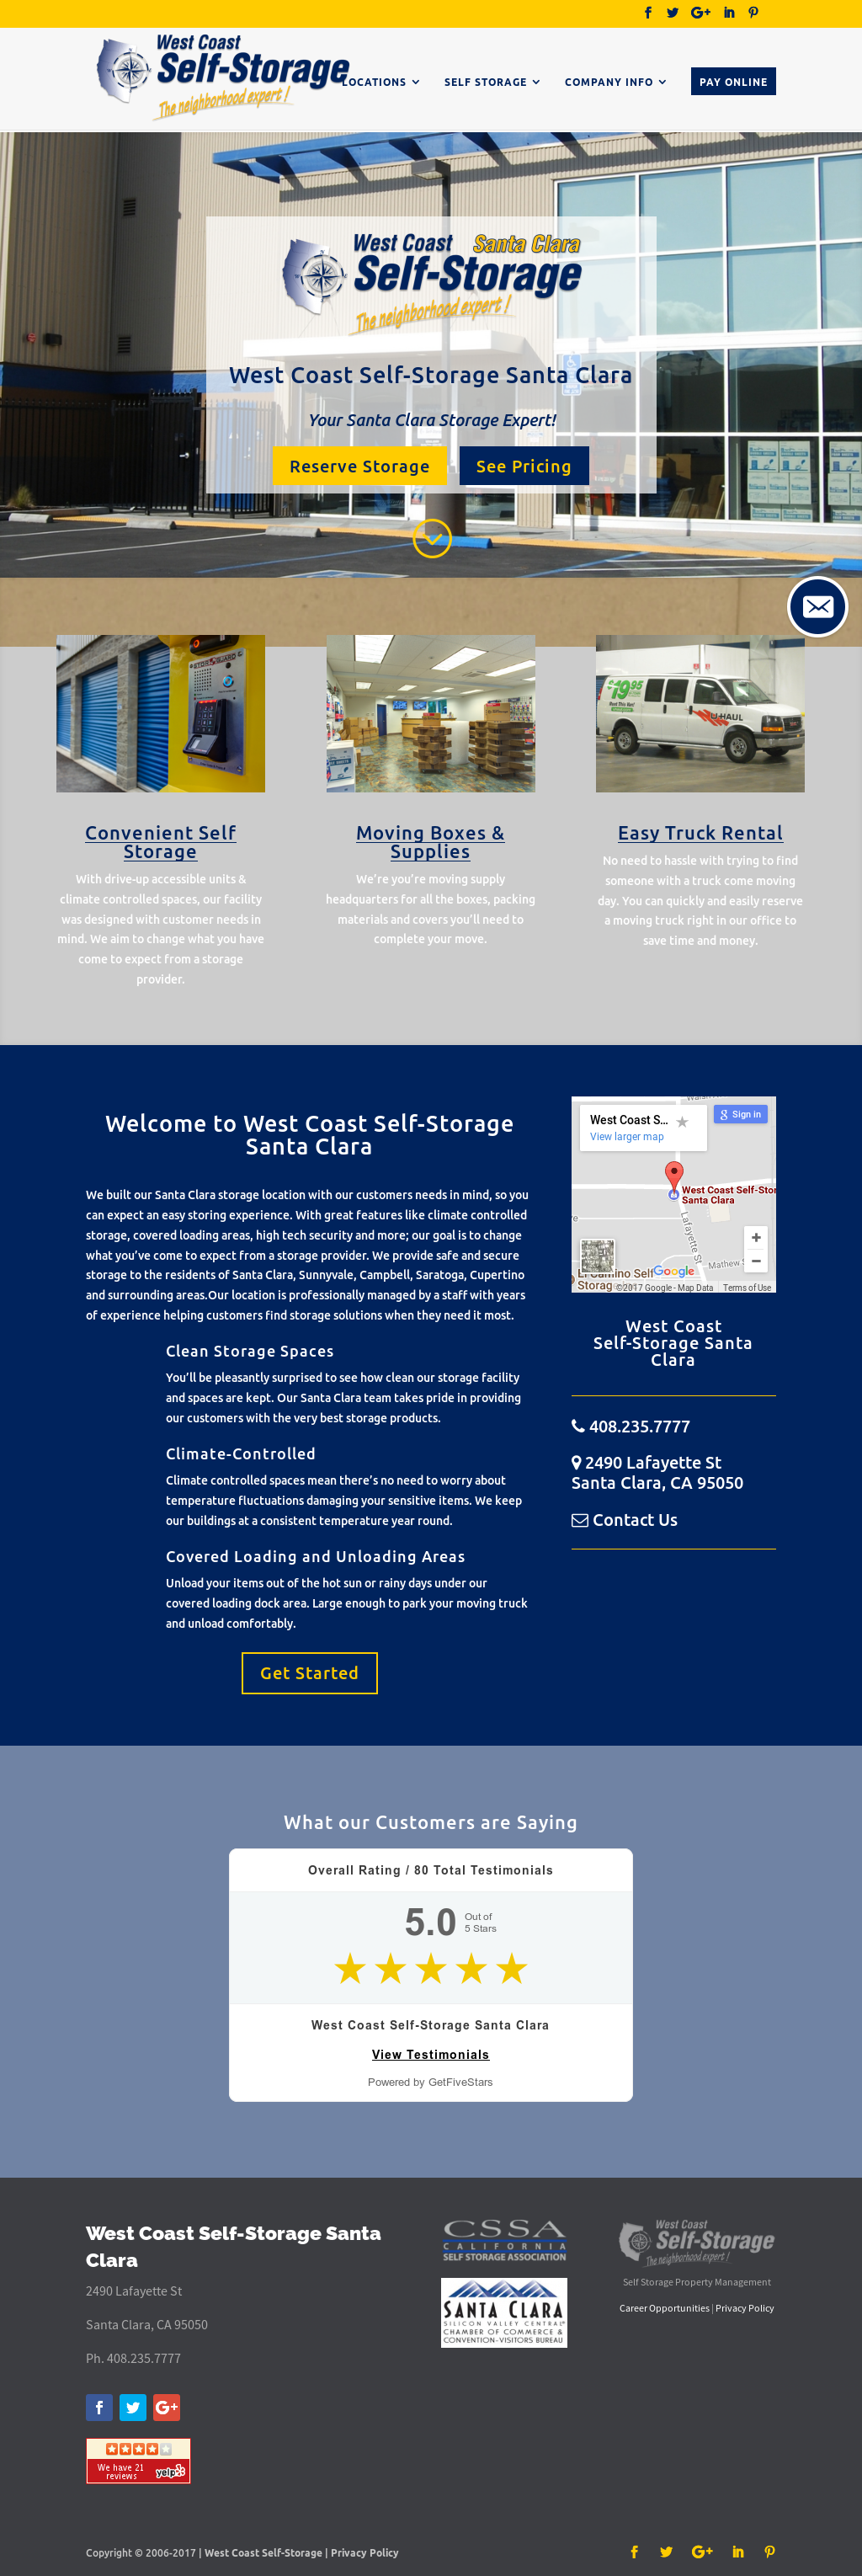 West Coast Self Storage Santa Clara Website History